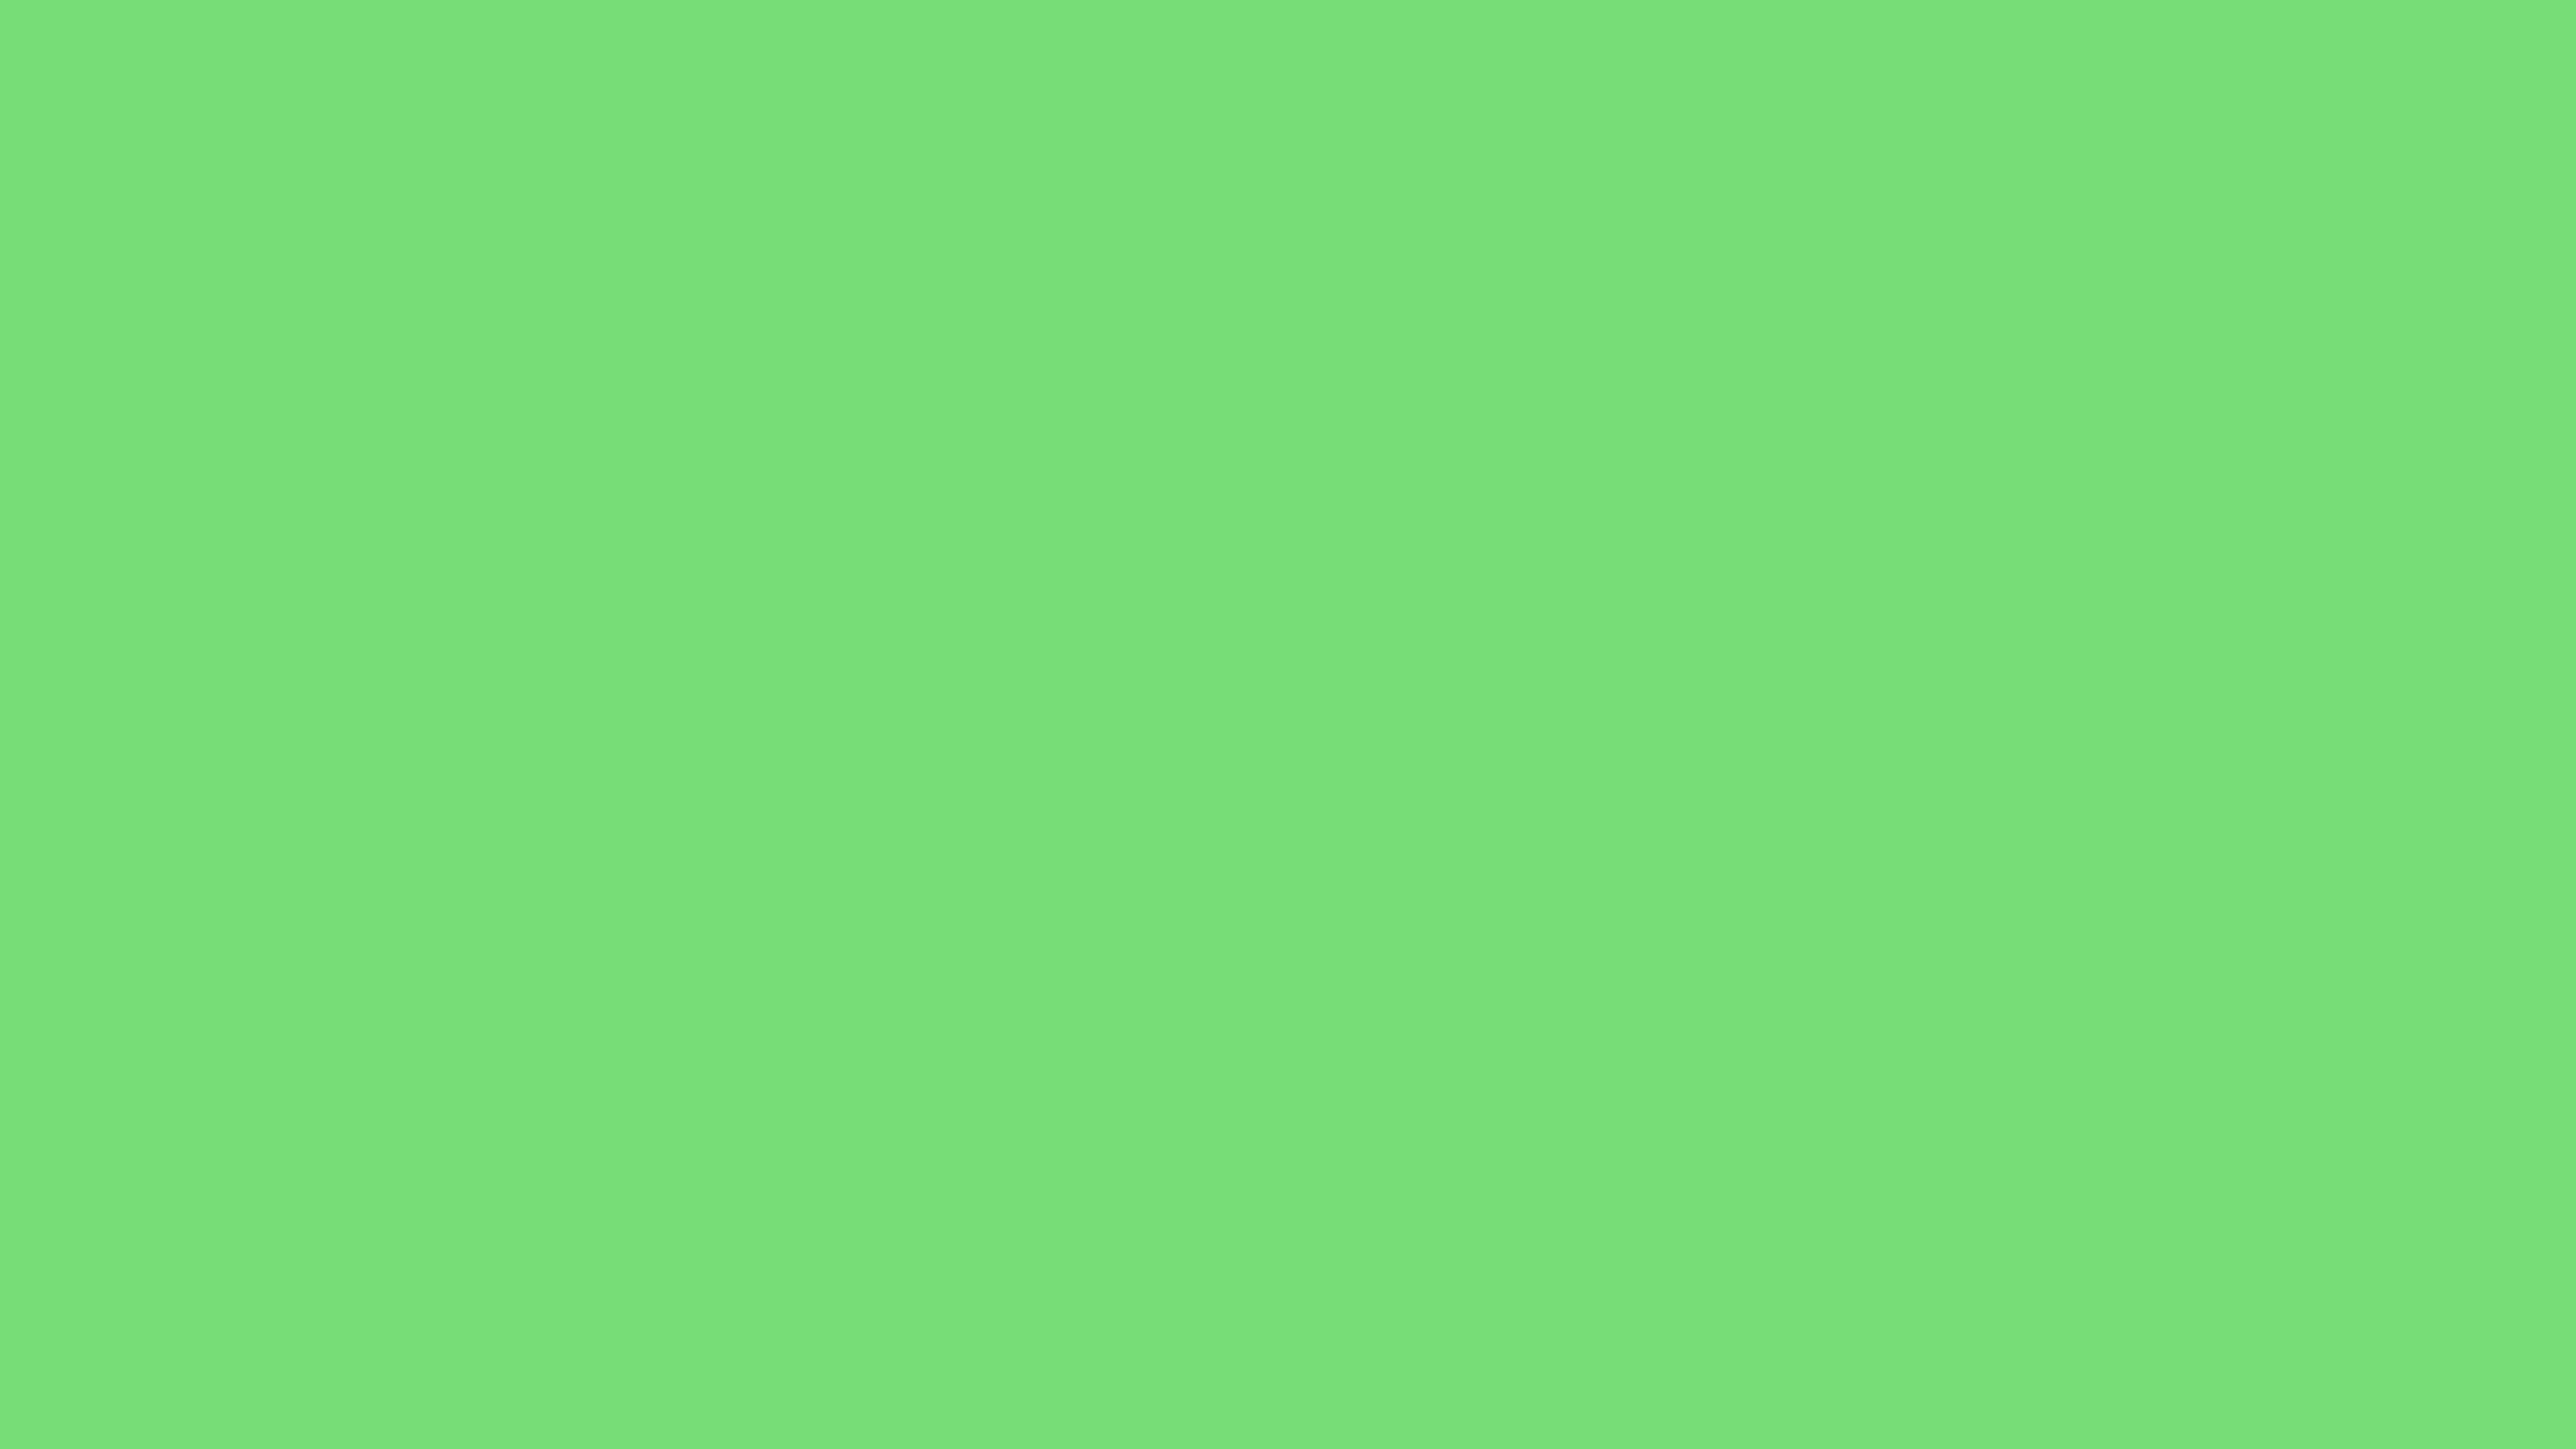 3840x2160 Pastel Green Solid Color Background